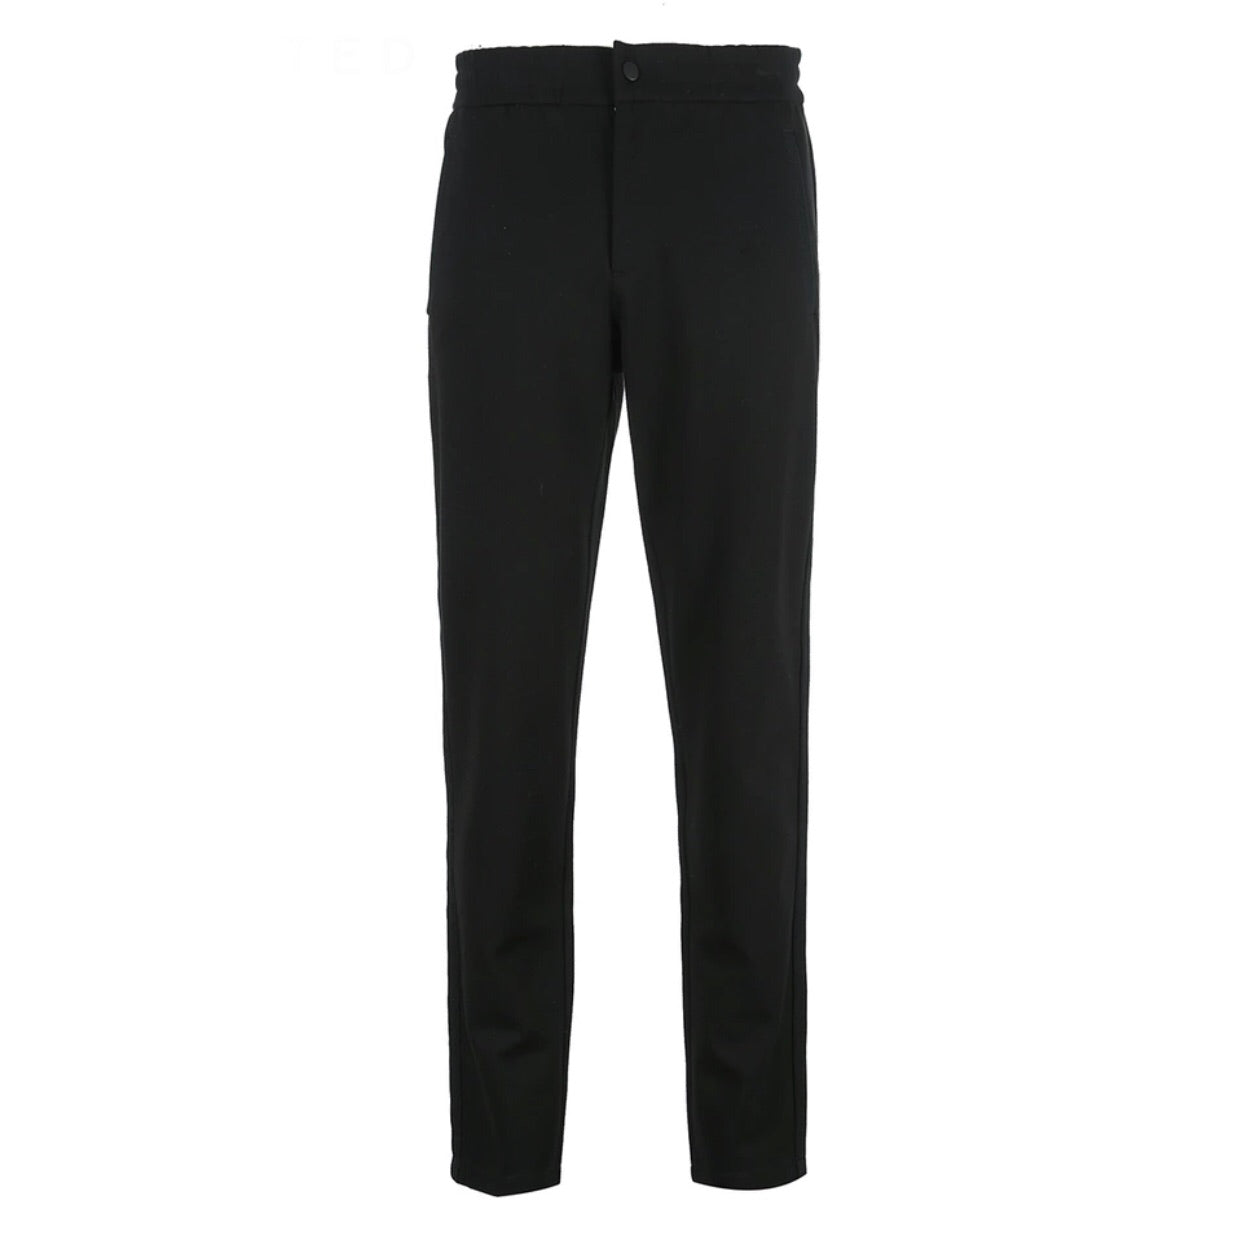 The Big & Tall Everyday Chino Pant - Up to Size 46